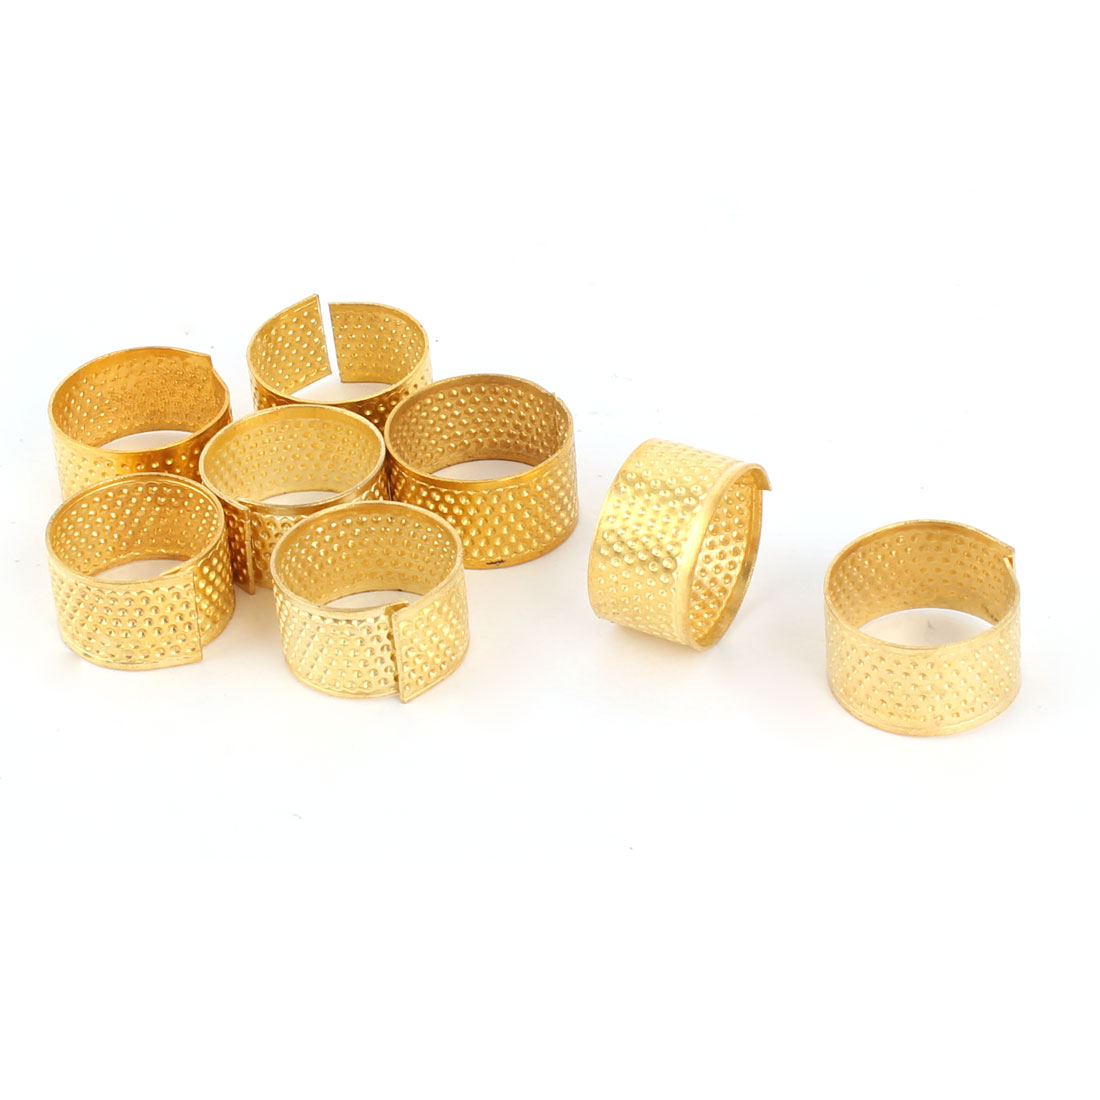 Tailors Metal Finger Protector Sewing Needle Stitching Thimble Rings Gold Tone 8pcs